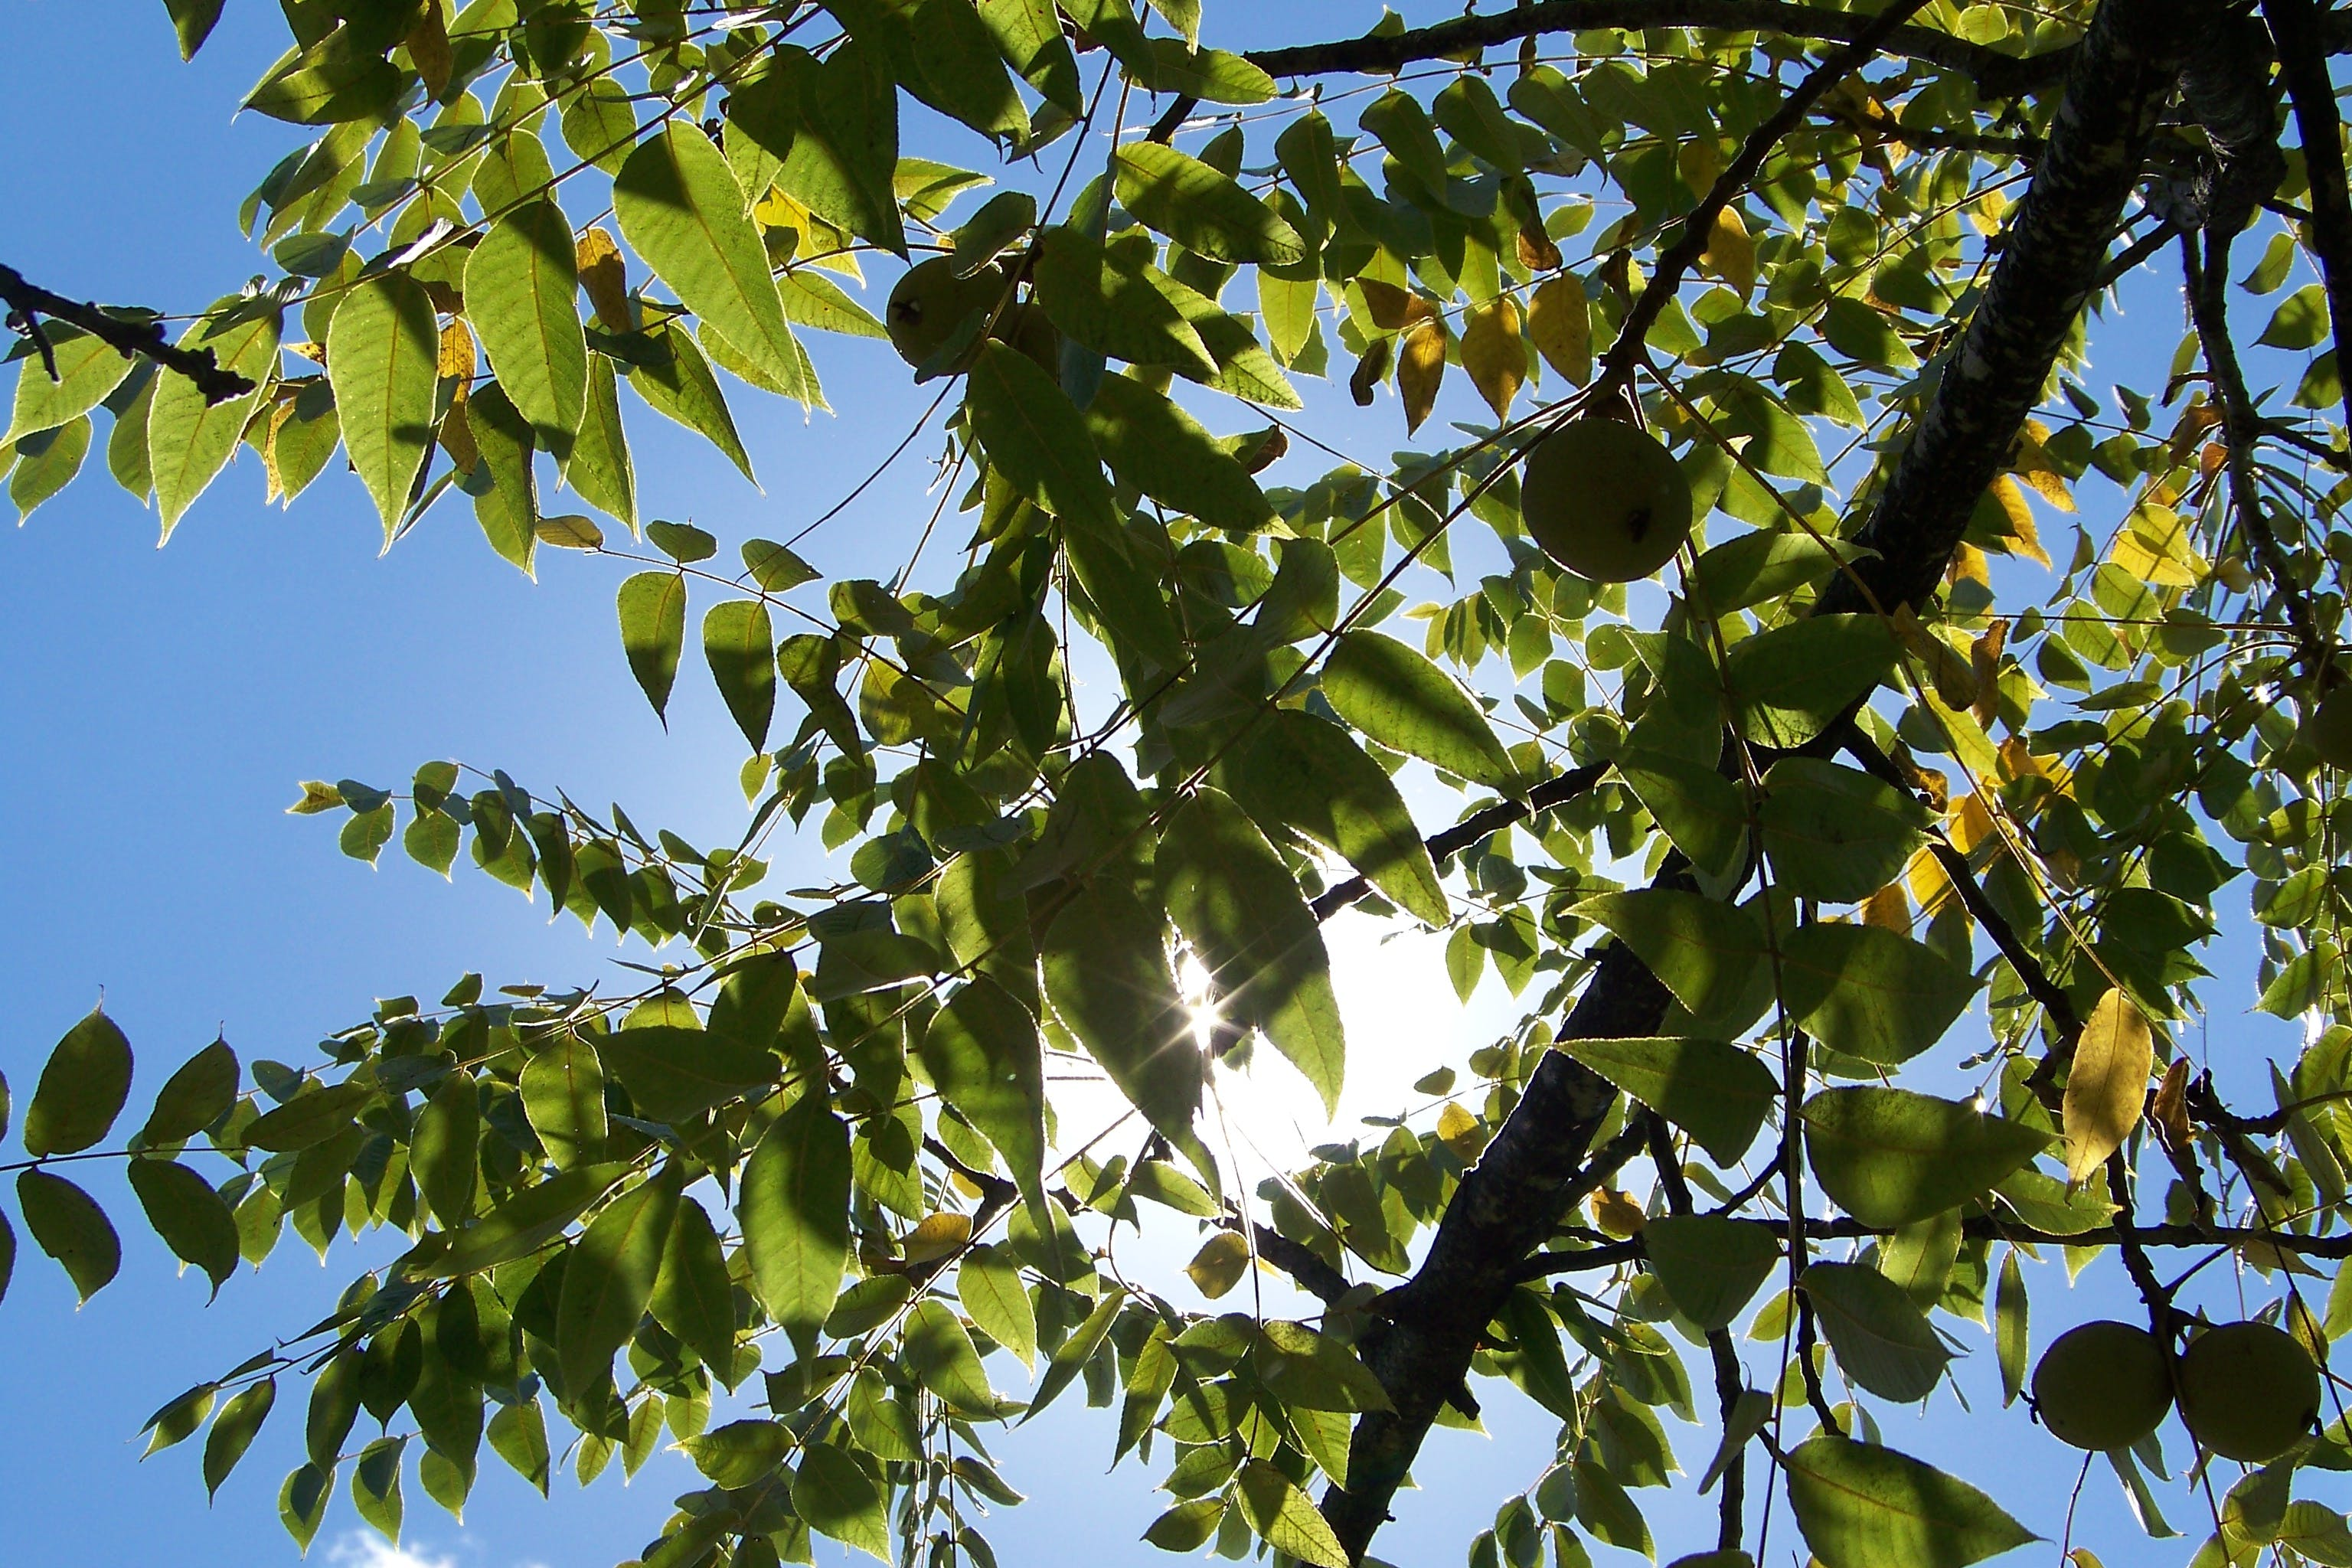 Low Angle Photography of Green Leafed Tree